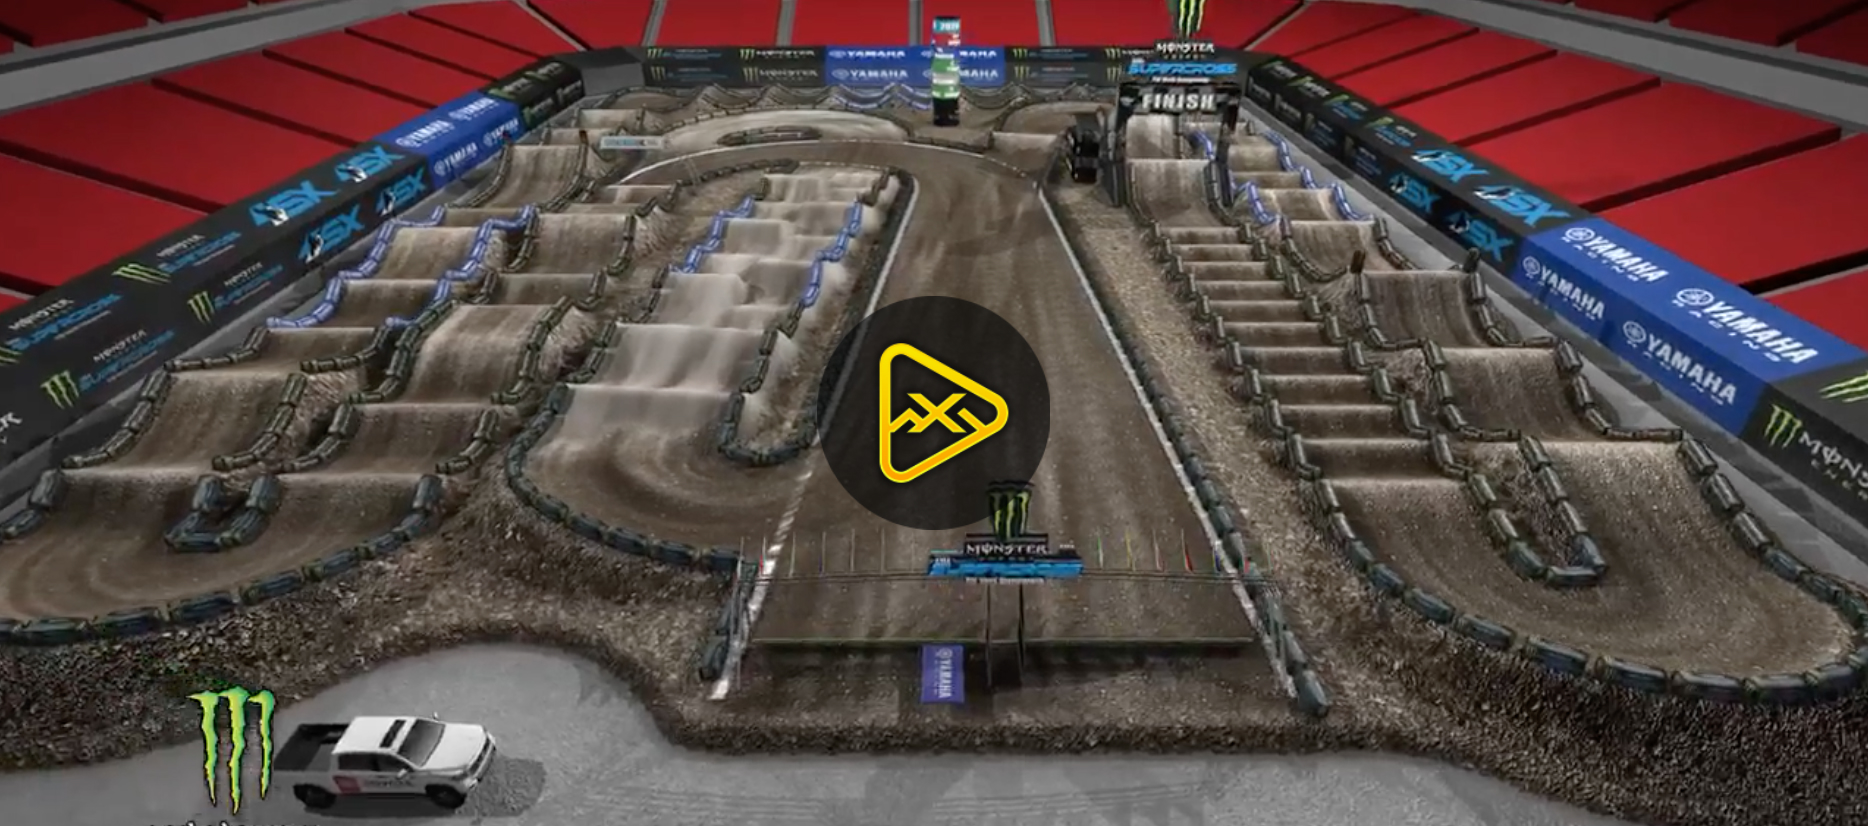 2020 Tampa SX Animated Track Map